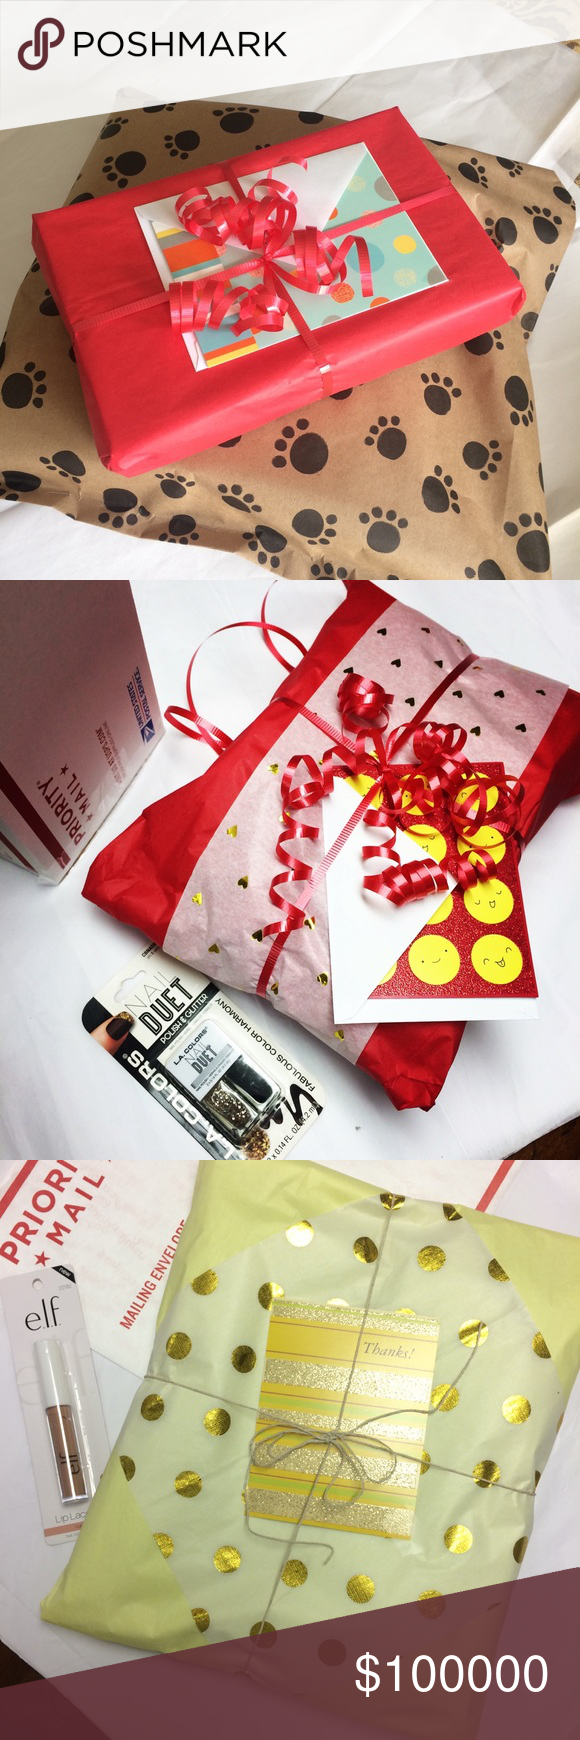 Pretty Posh Packages For love and lemons, Packaging